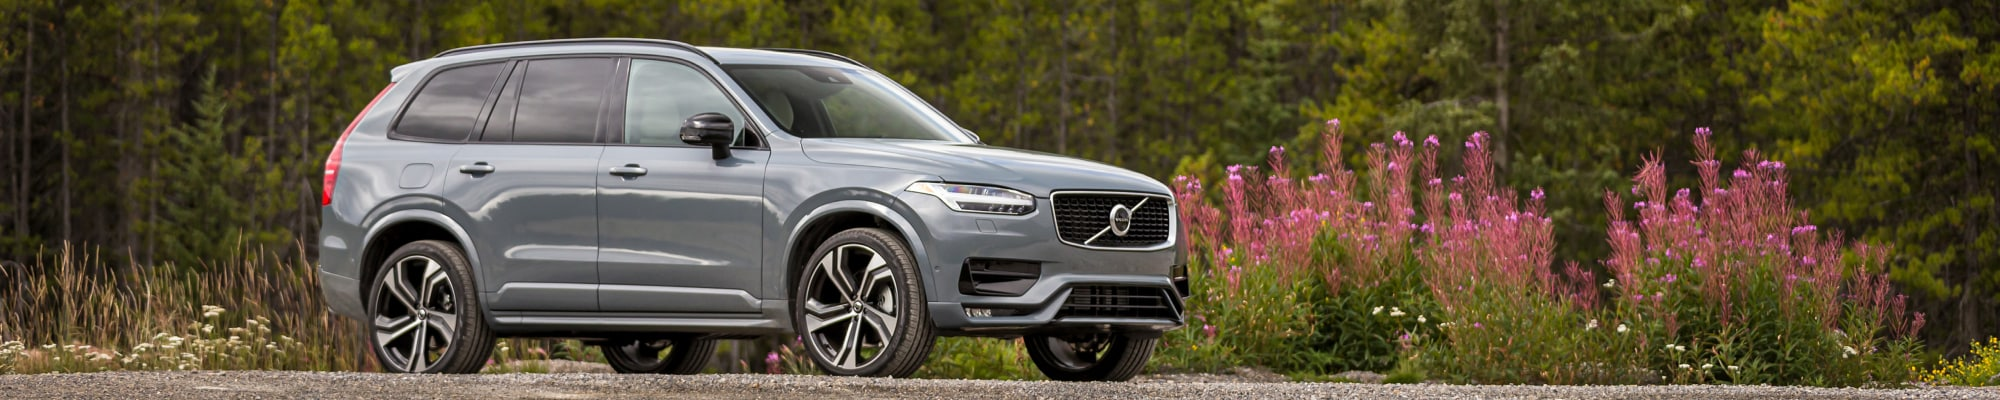 New Volvo XC90 in the mountains with flowers